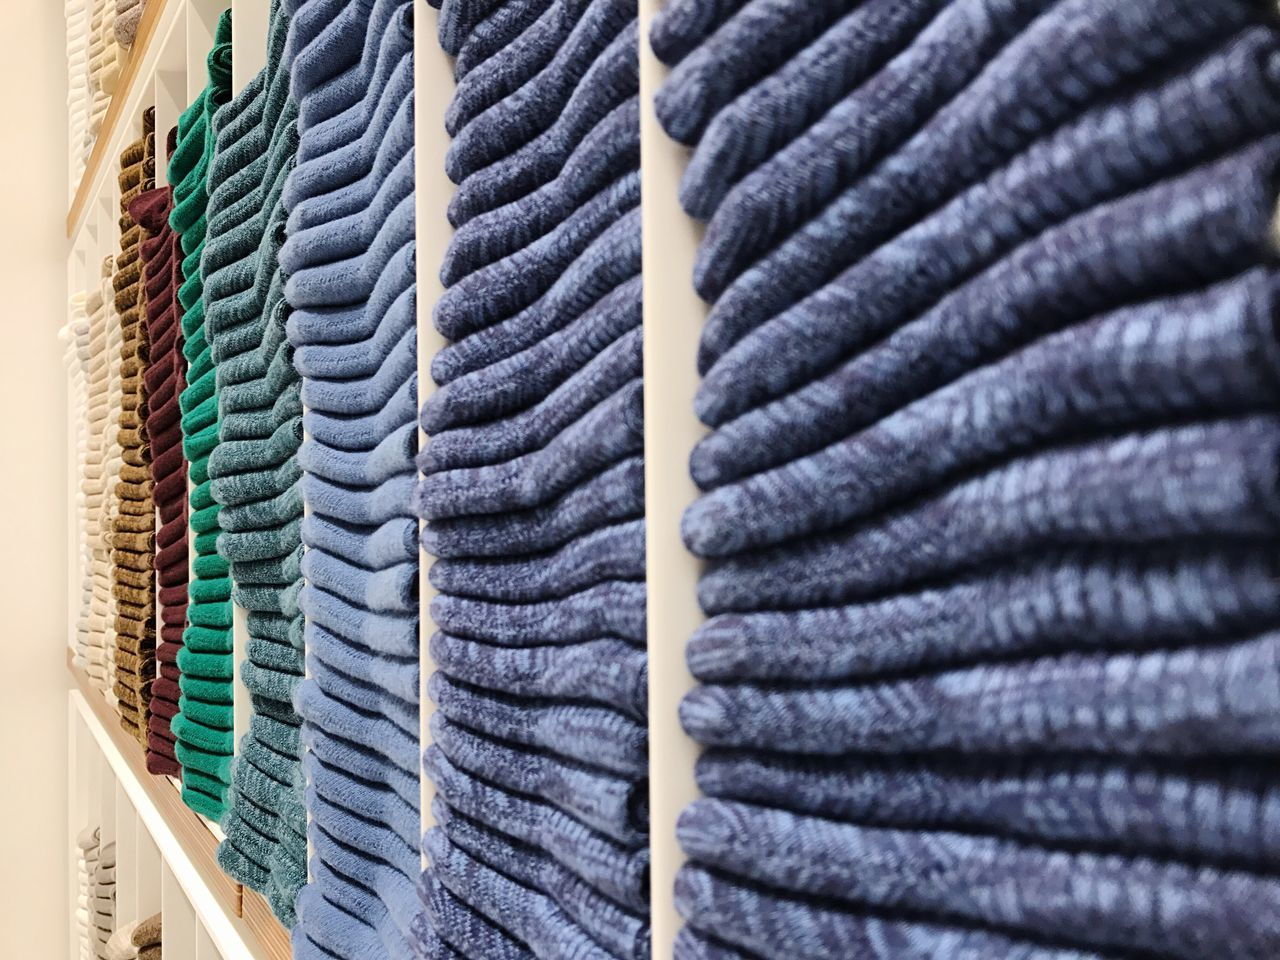 In A Row Textile Textile Industry No People Neat Store Arrangement Indoors  Large Group Of Objects Backgrounds Stack Retail  Choice Full Frame Close-up Multi Colored Manufacturing Equipment Day